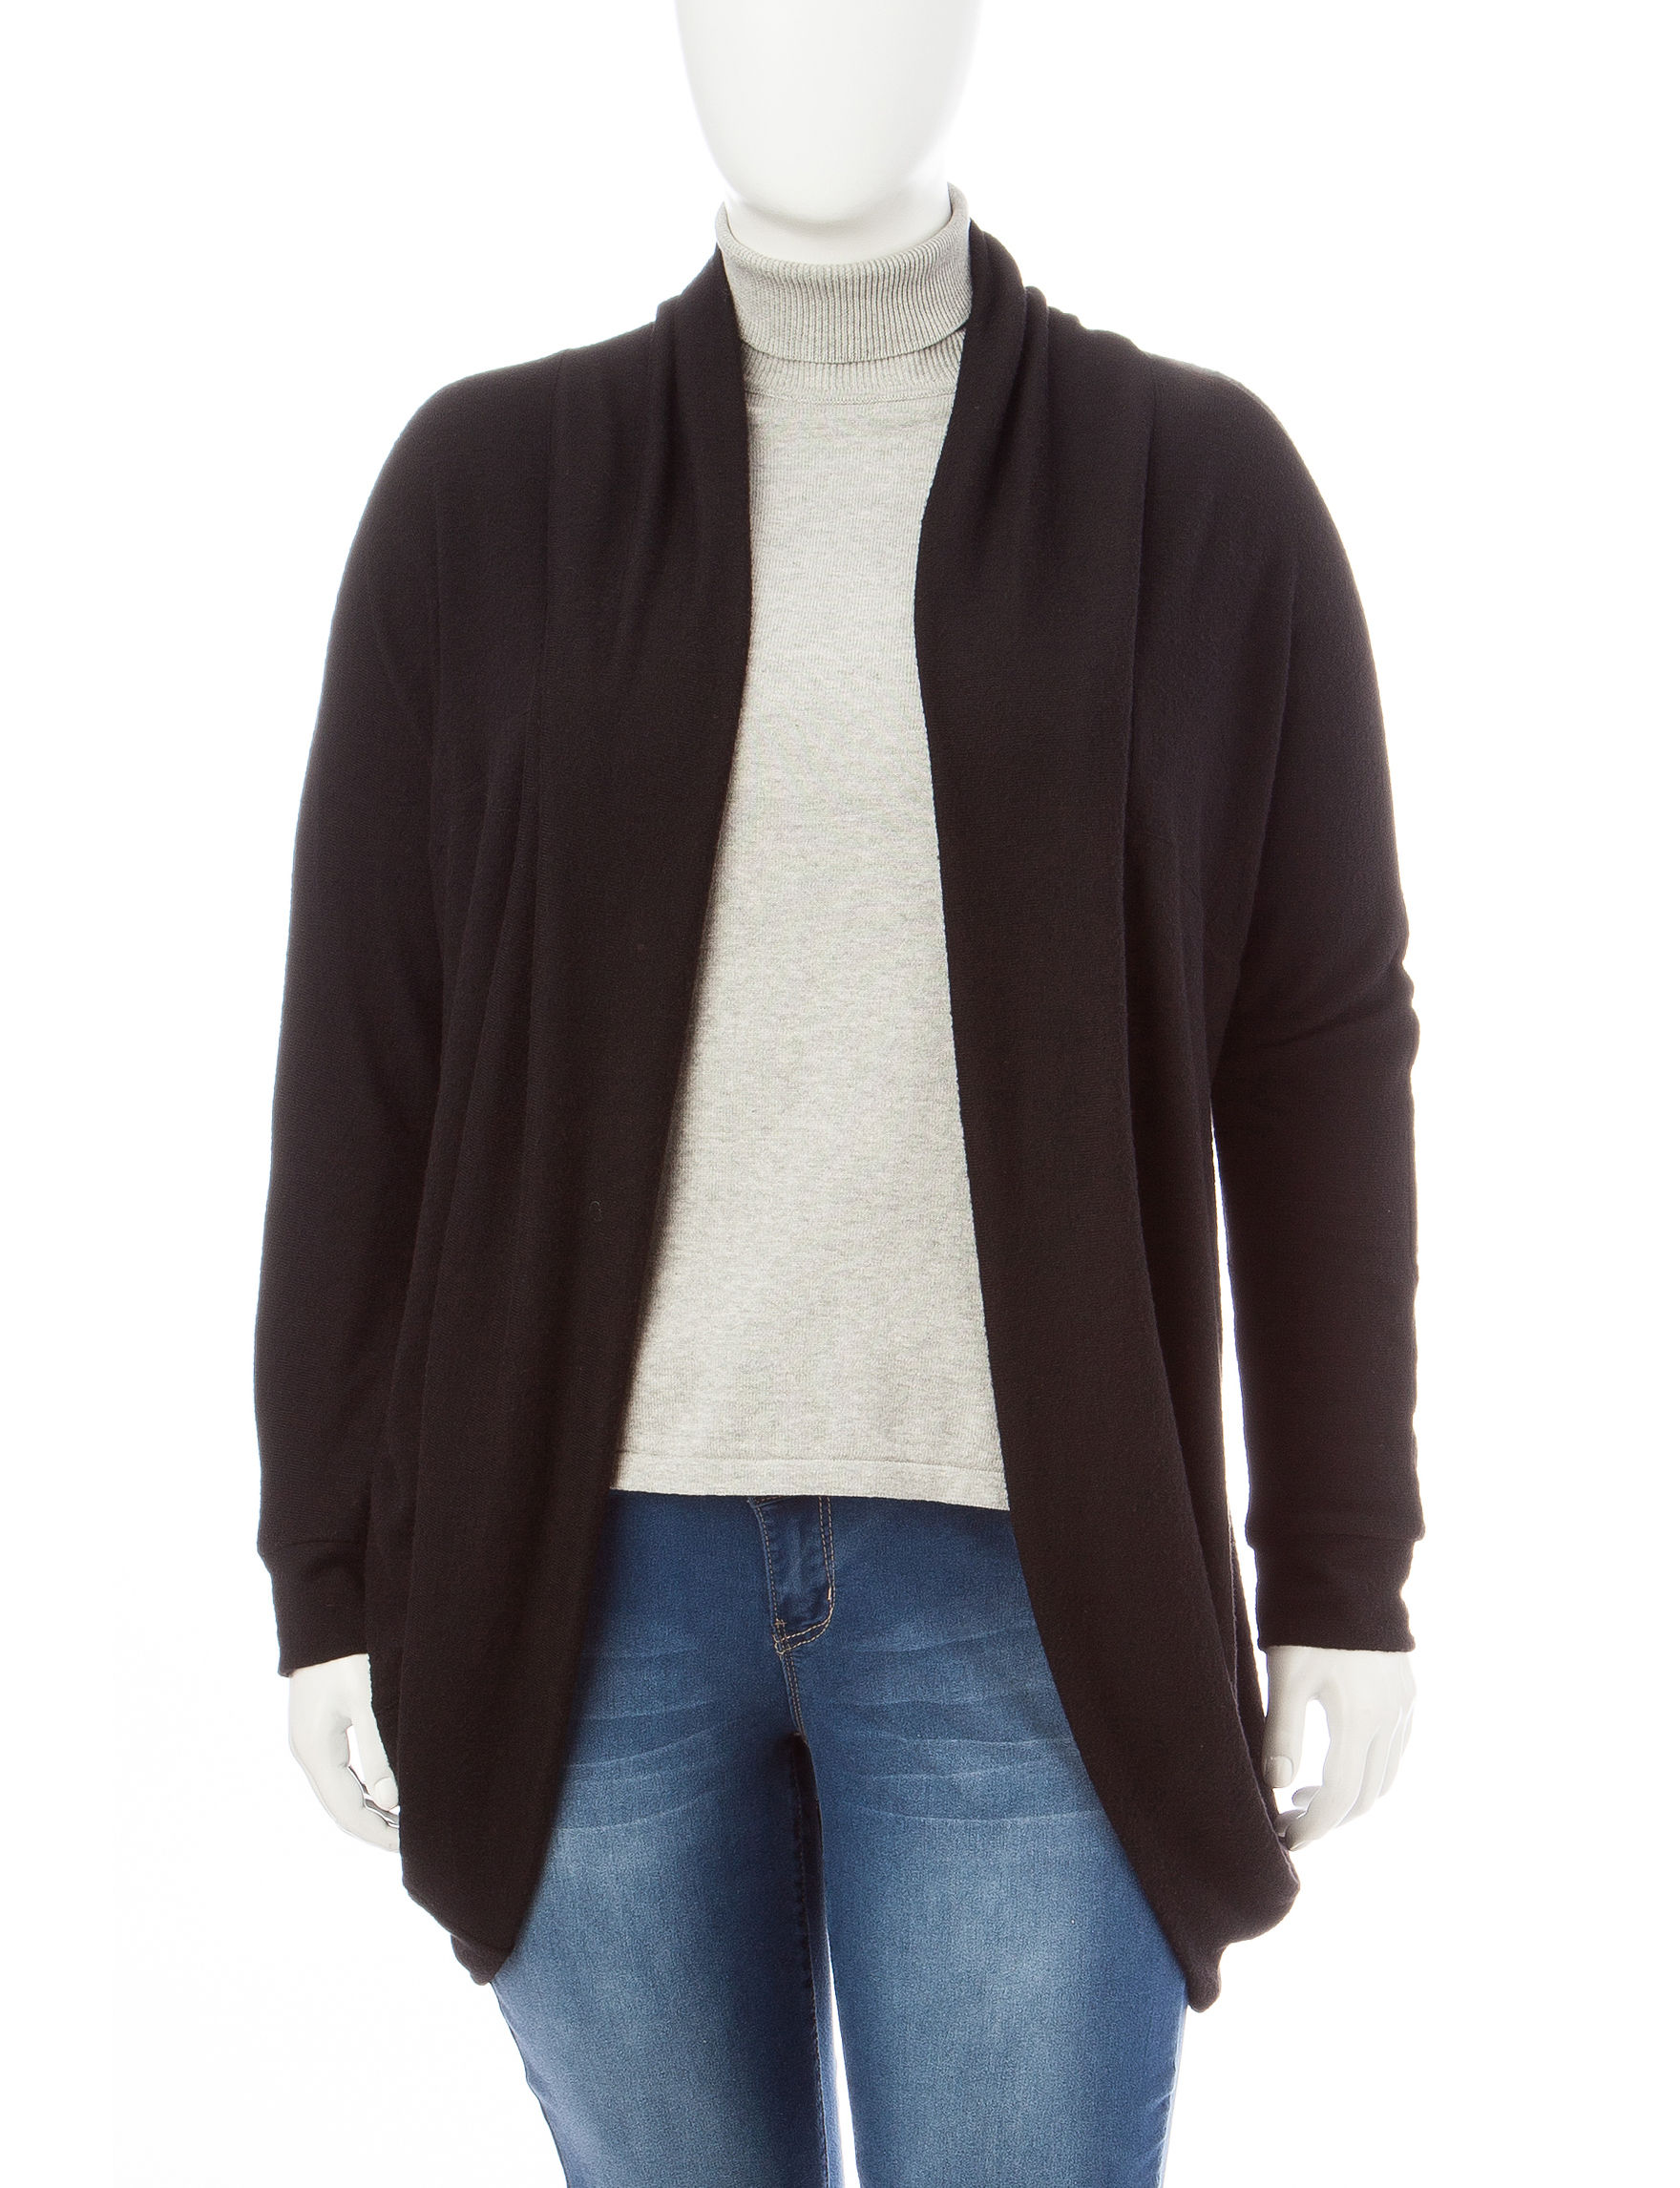 Find great deals on eBay for juniors black cardigan. Shop with confidence.